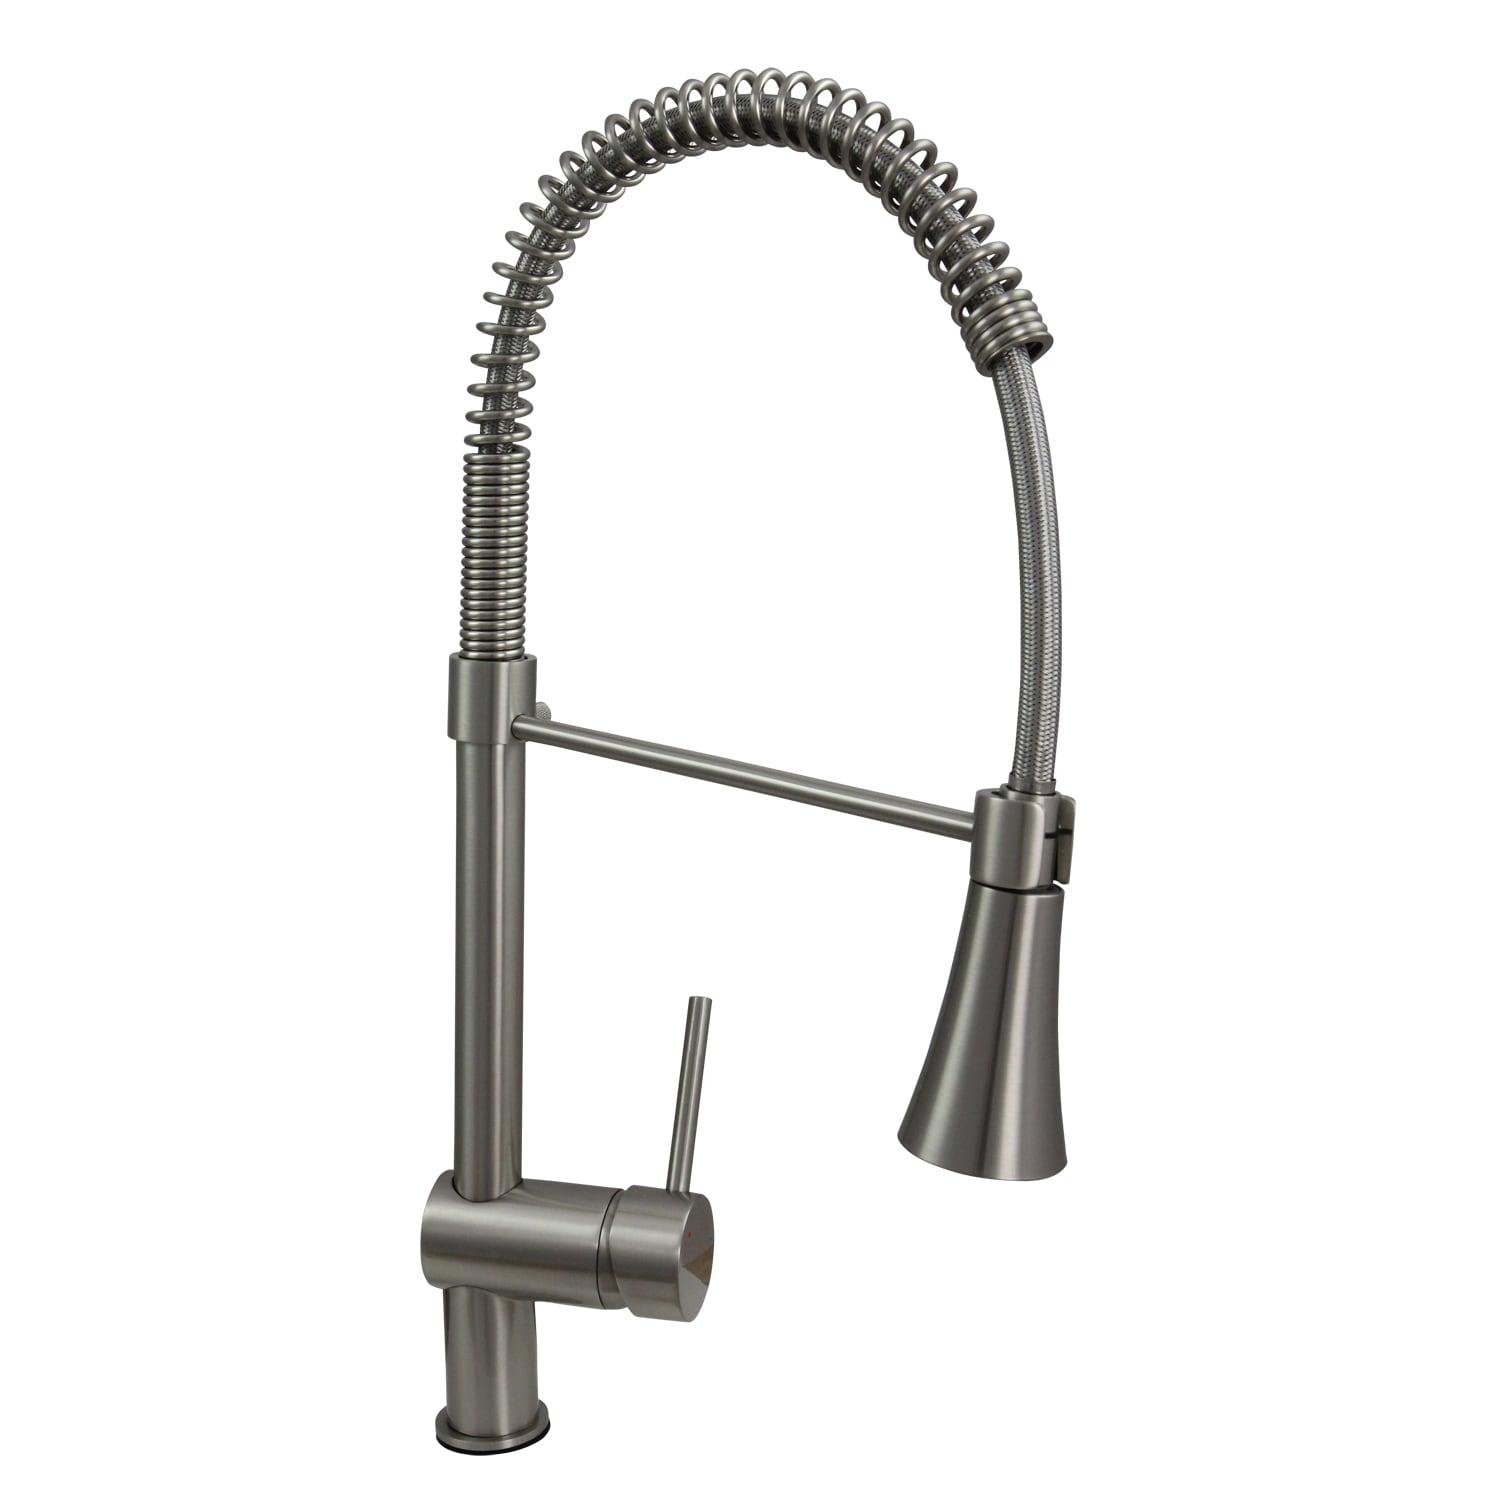 Dyconn 22-inch Contemporary Kitchen Brushed Nickel Swivel Faucet